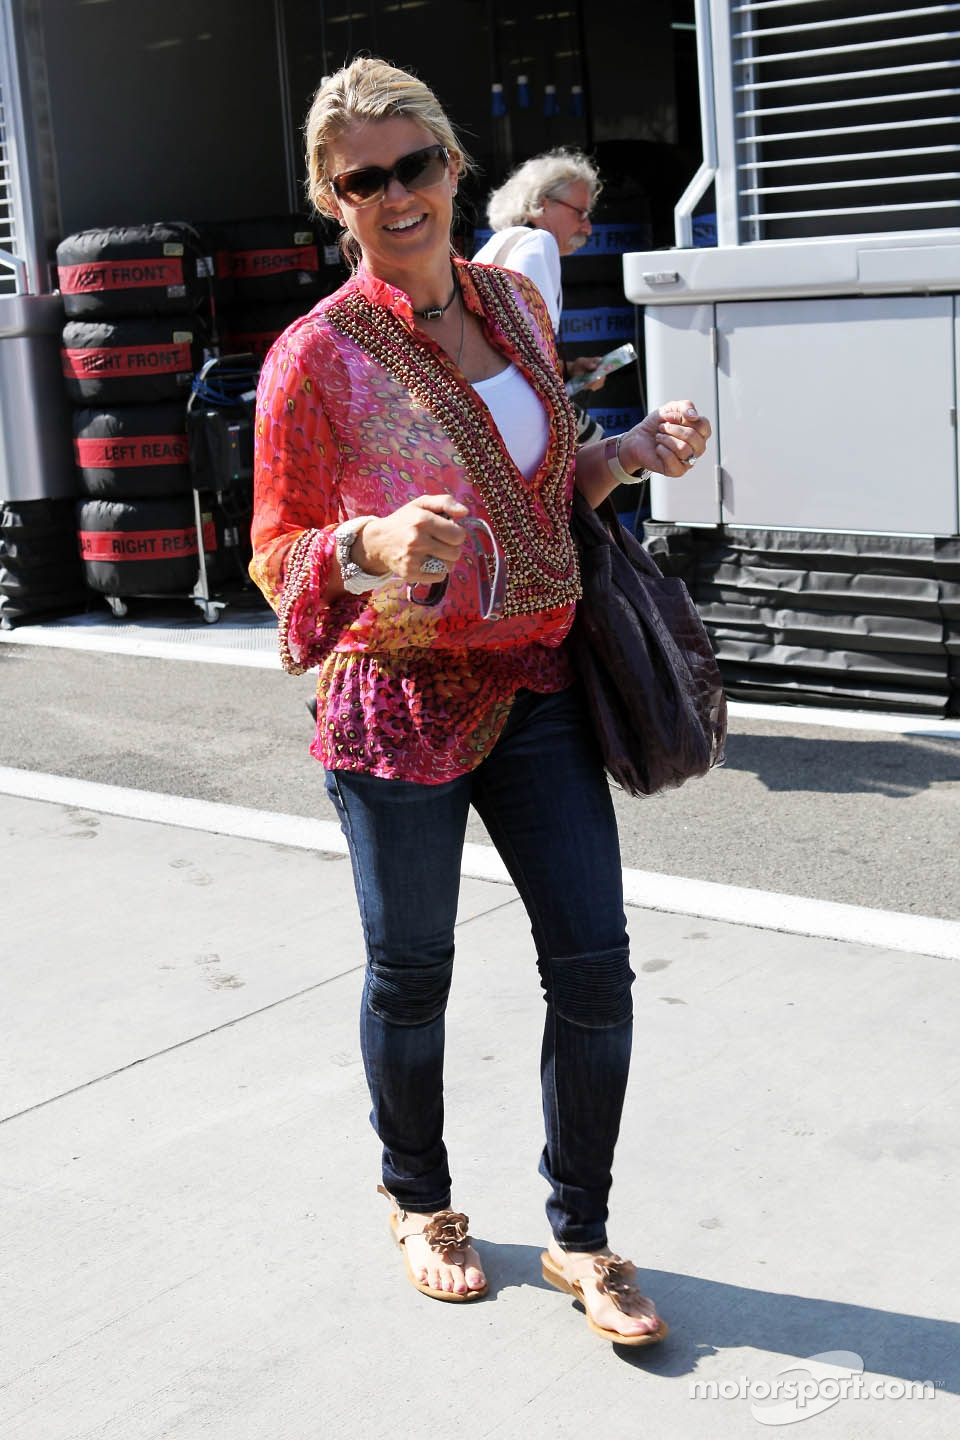 Corinna Schumacher